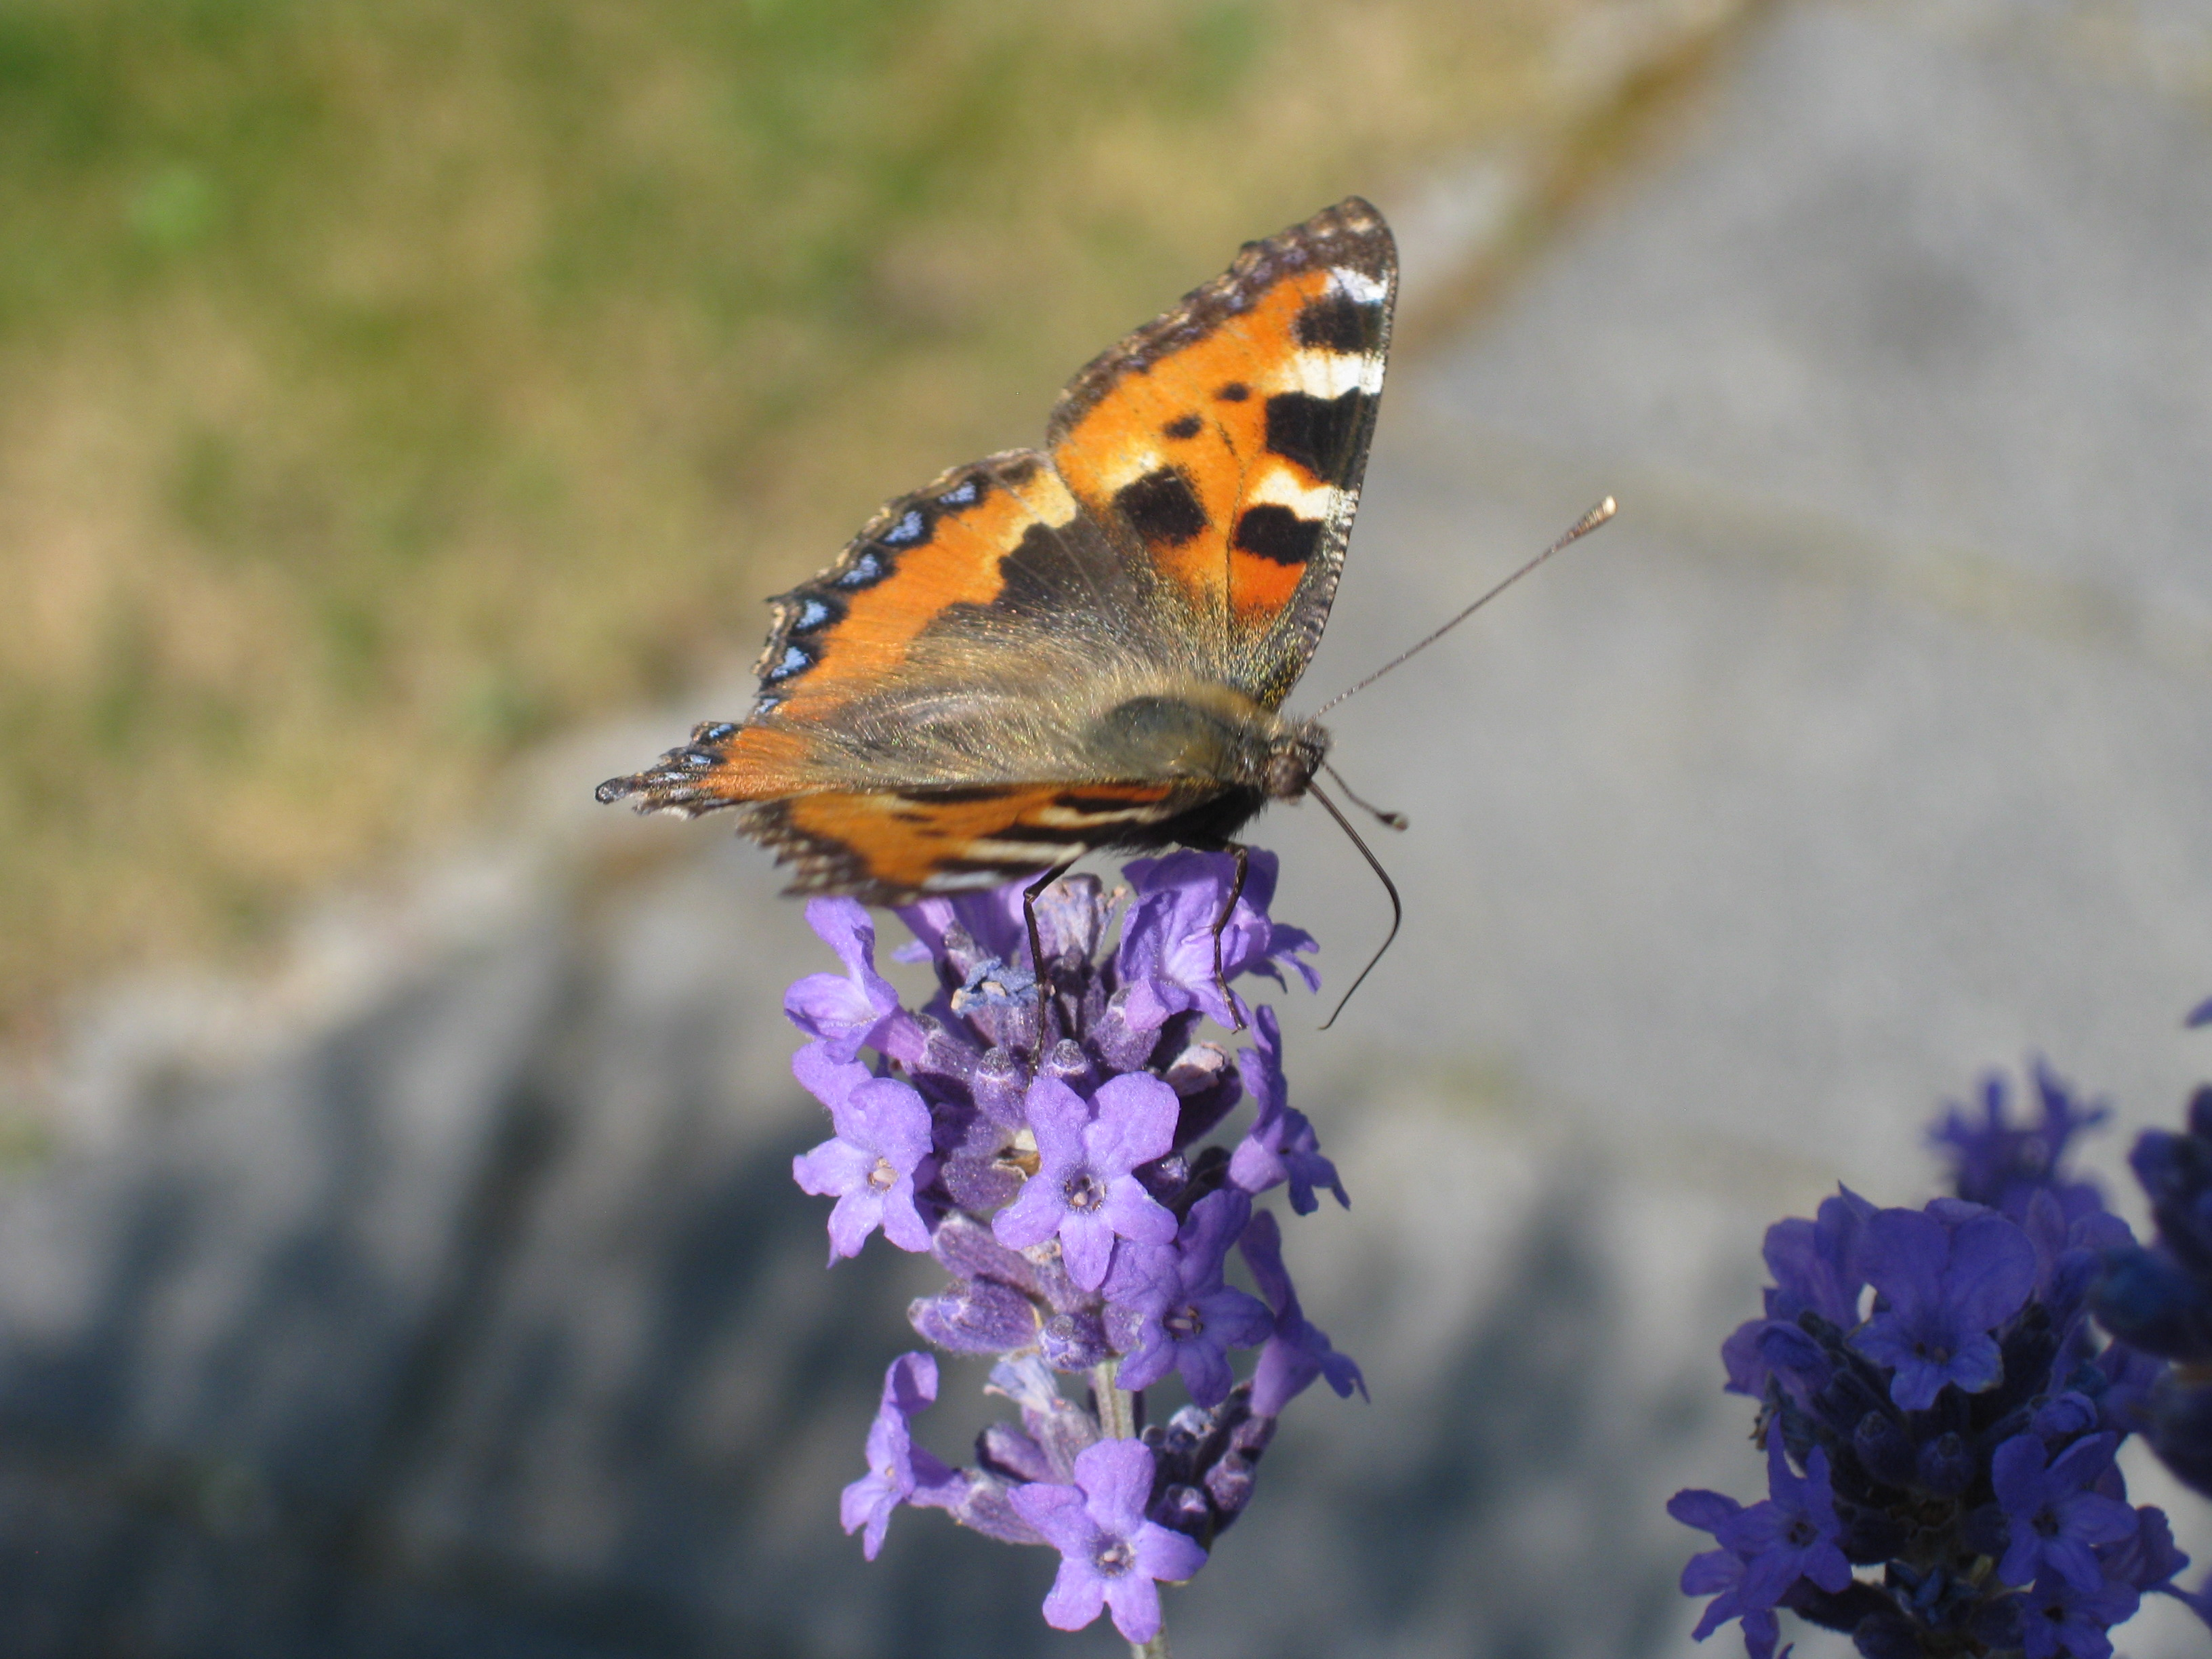 Butterfly - photo#52